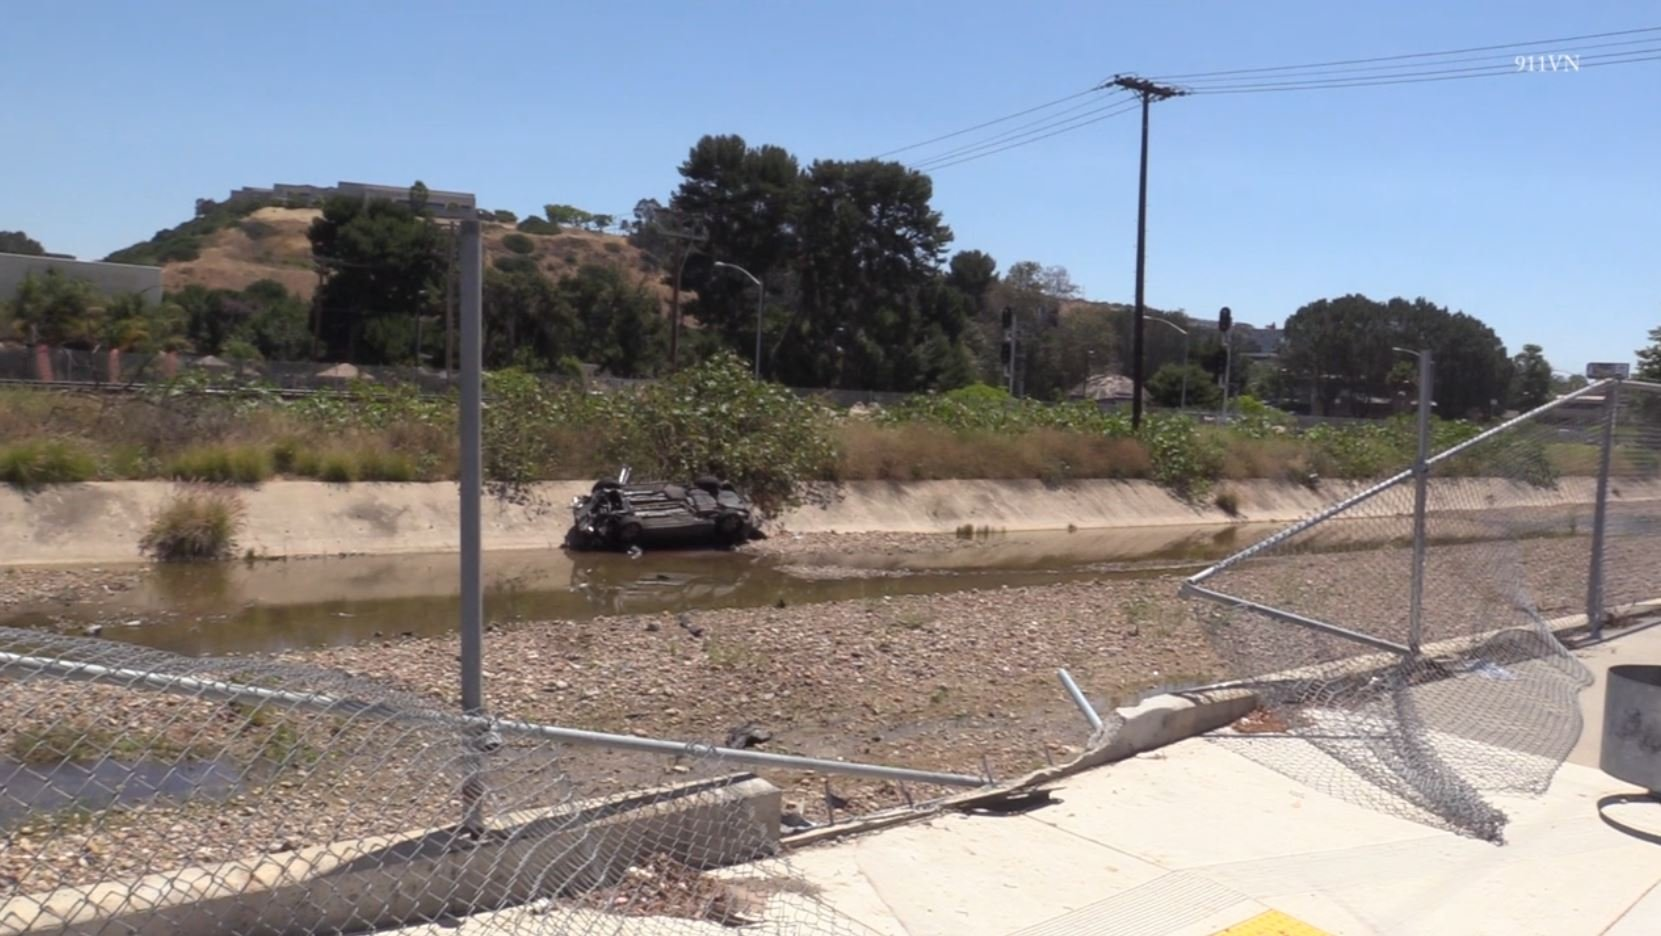 Motorist killed after crashing through fence into concrete drainage ditch in Sorrento Valley